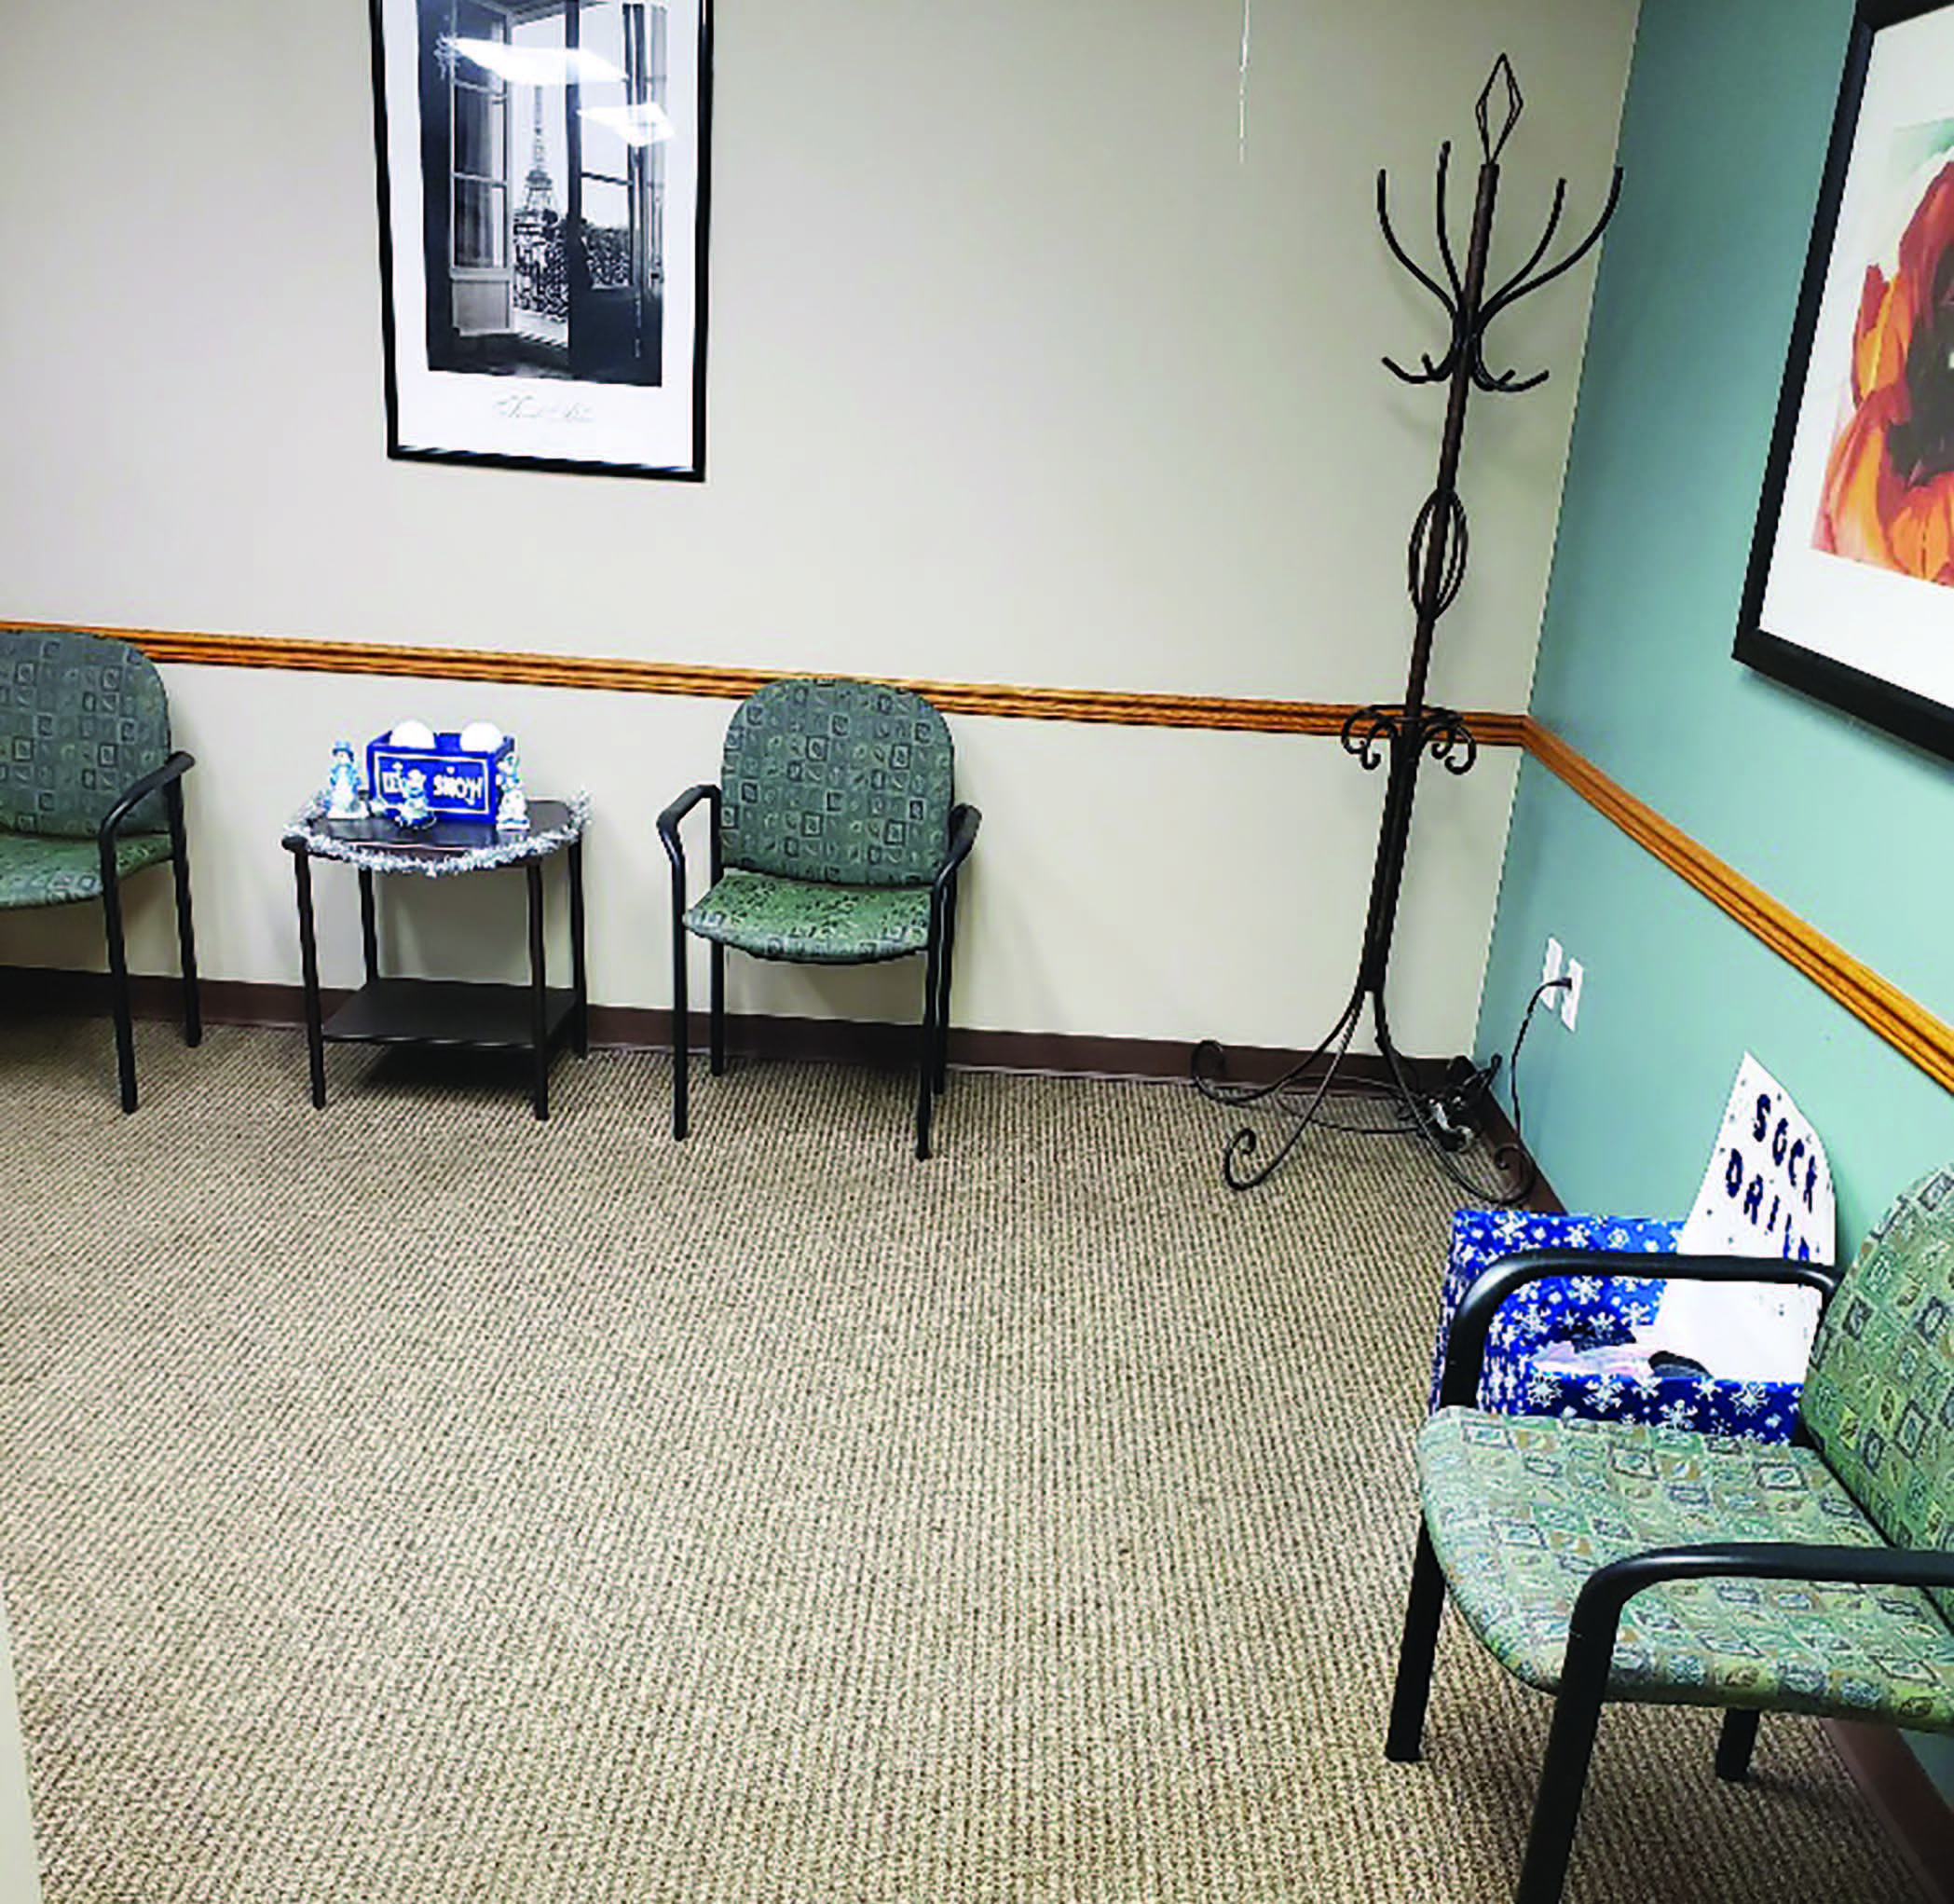 Here one can see a socially-distanced podiatry waiting room. Depending on the specific clinic environment, some clinicians have even eliminated the waiting room completely by having patients wait in their cars until a treatment room is available.(Photo courtesy of Sarah Benjamin, DPM)